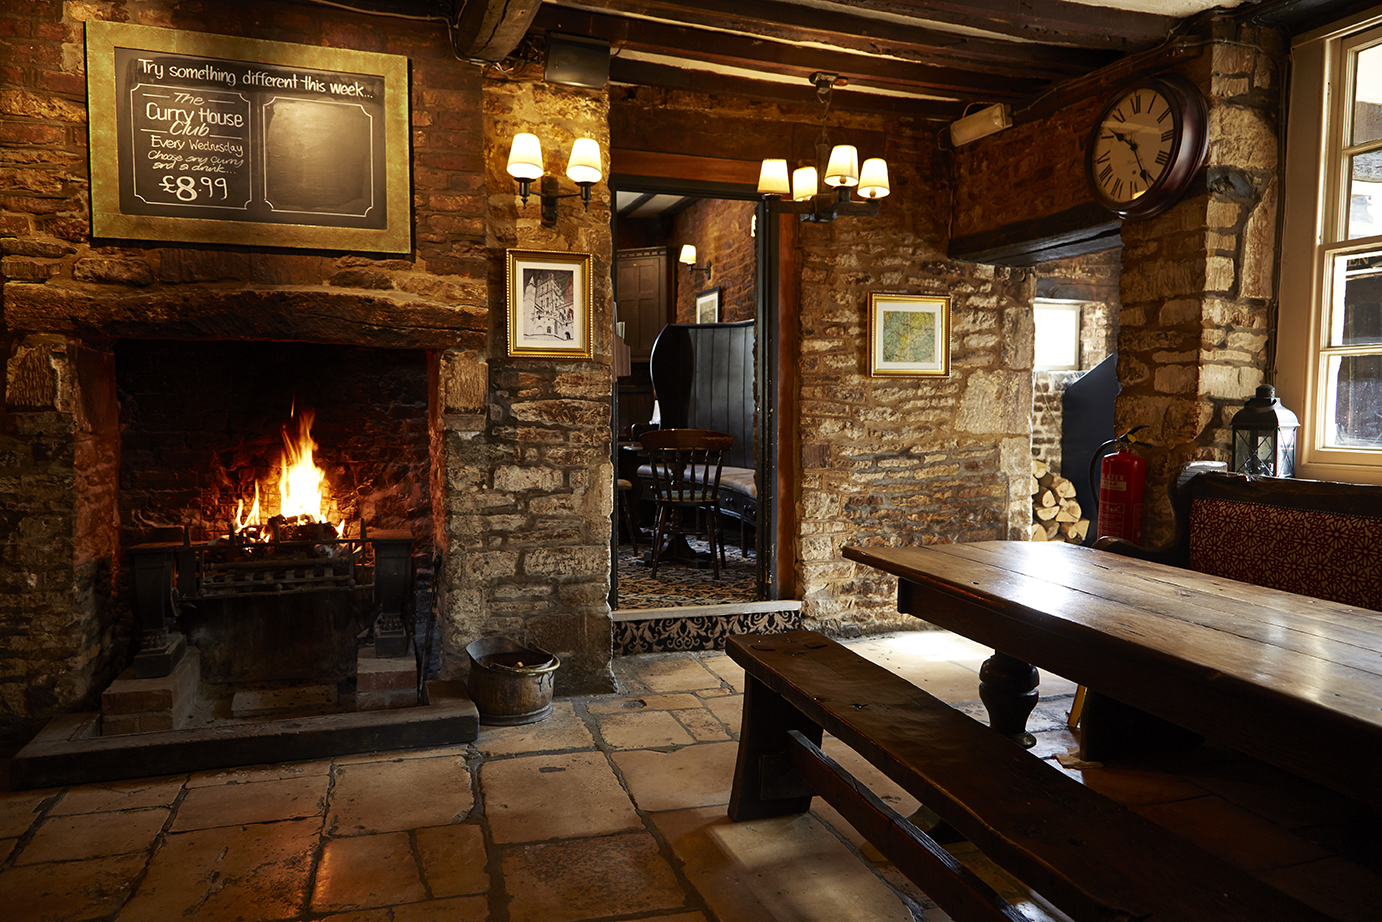 hunters hall photography interior photography property photography old english inns oei greene king dining.jpg